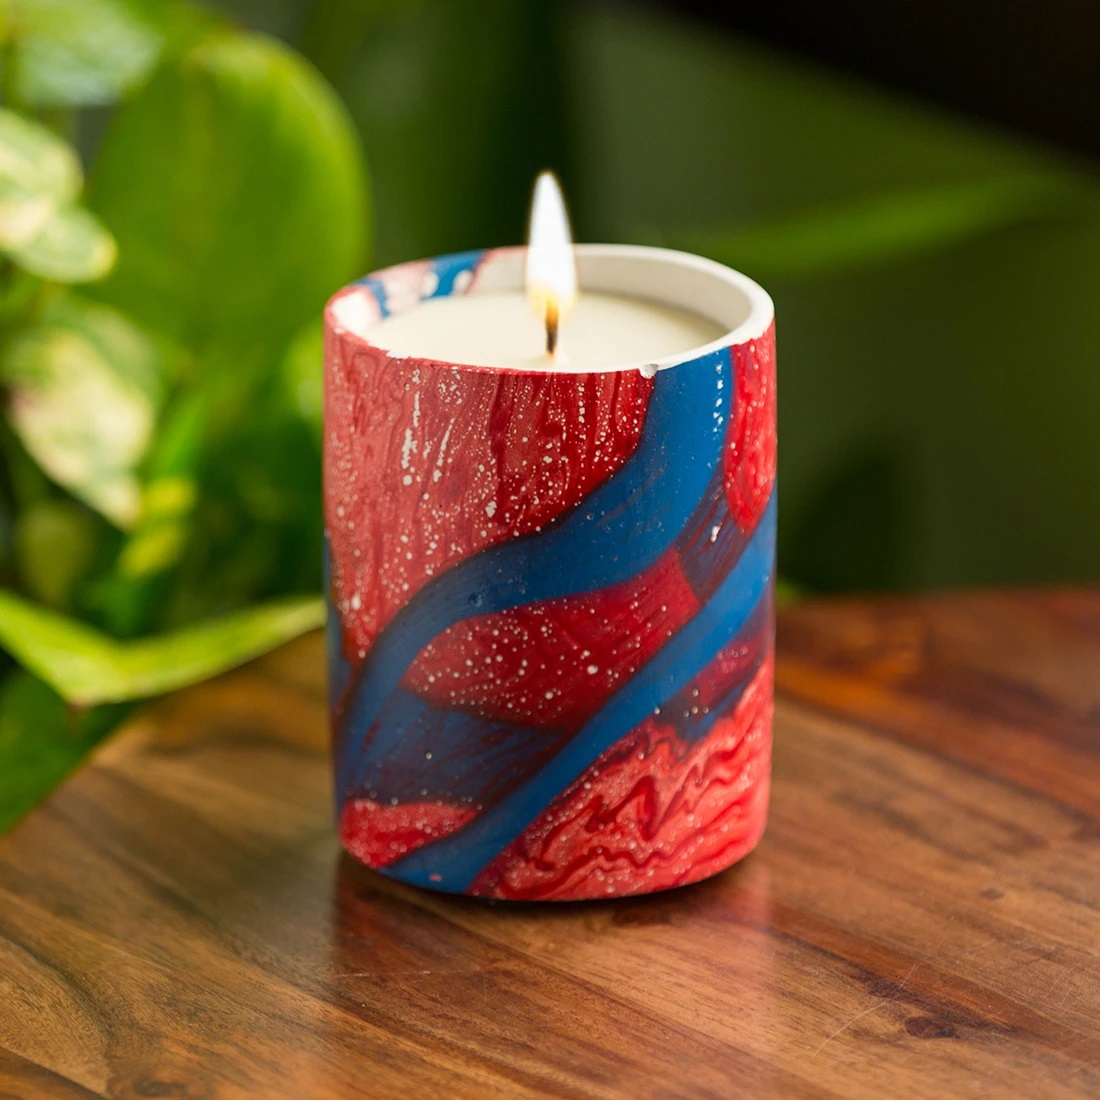 Moorni The Lilian Blue Scented Wax Candle In Concrete with Abstract Handpainting